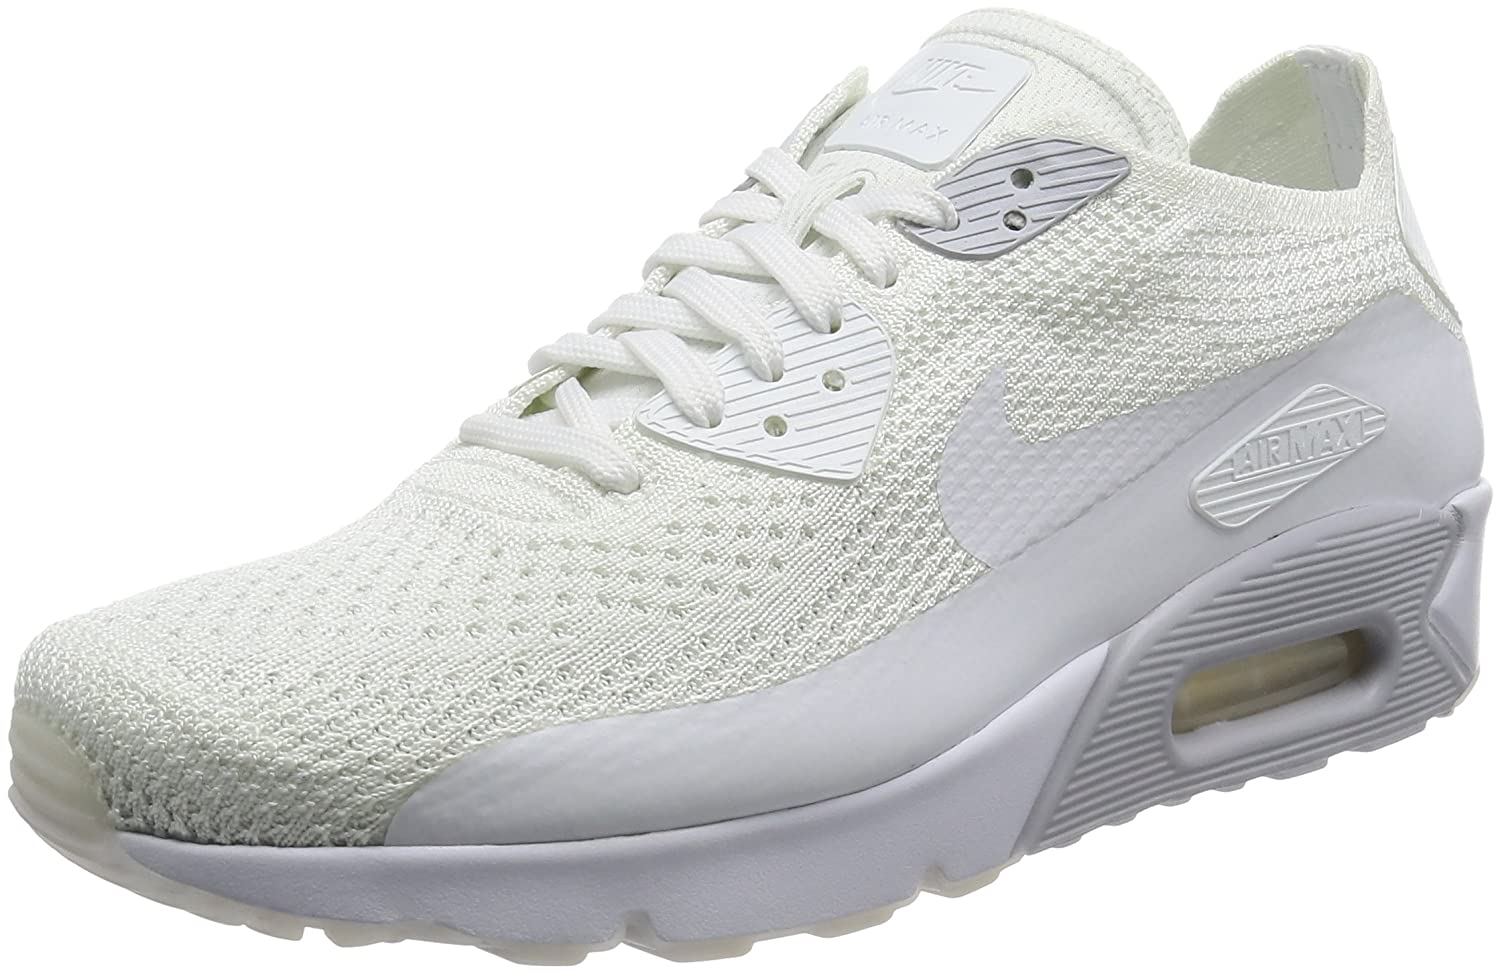 a6668d8498 Amazon.com | Nike AIR MAX 90 Ultra 2.0 Flyknit White Pure Platinum Mens  Running 875943 101 | Road Running